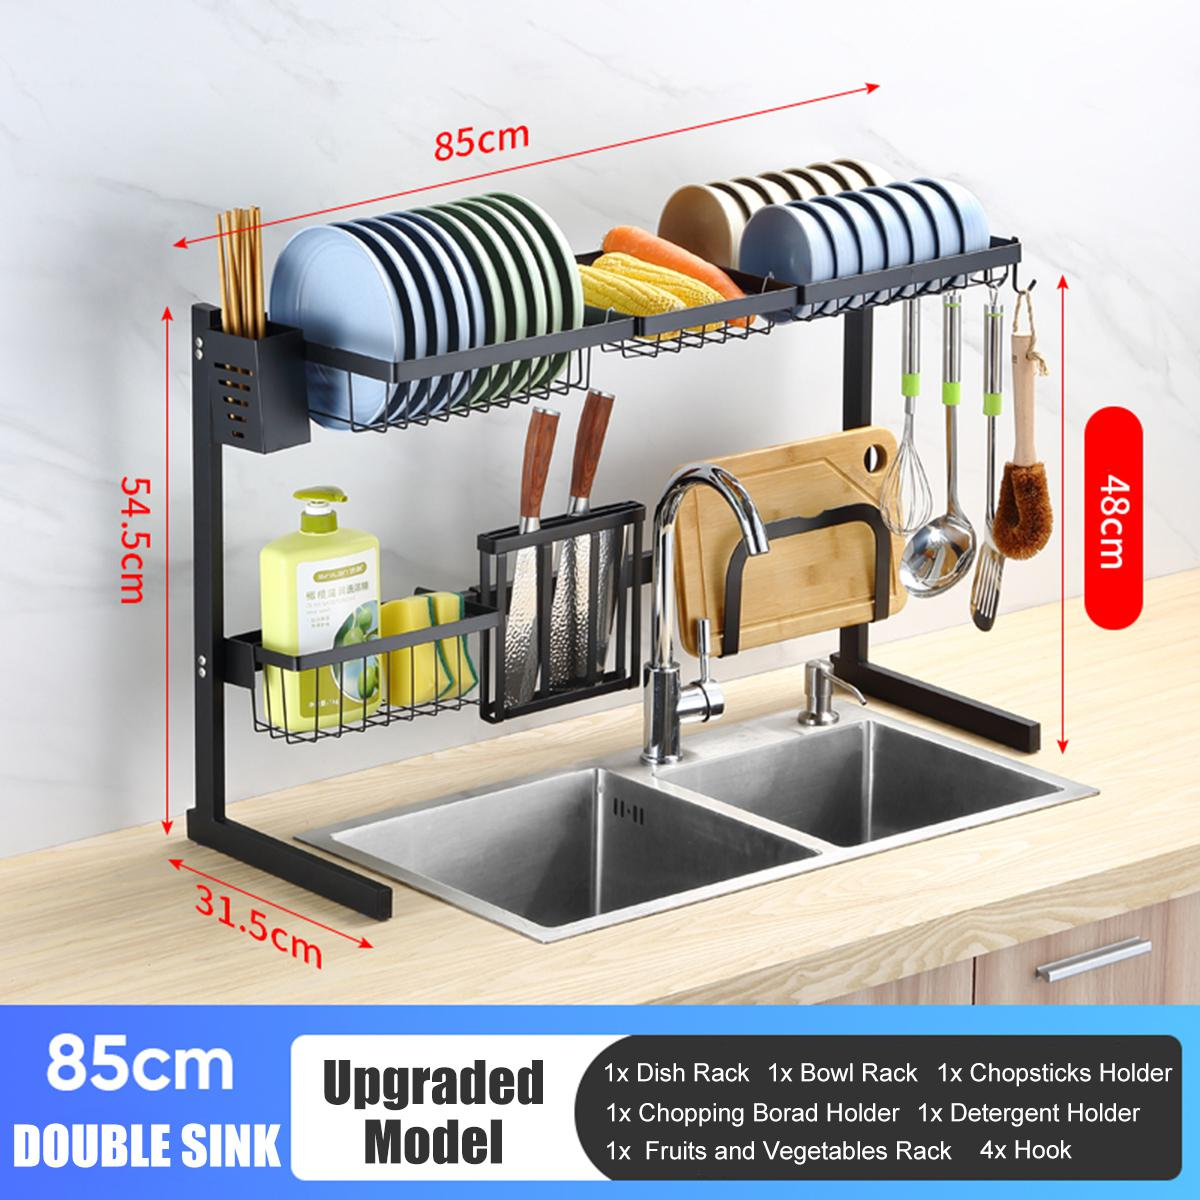 65cm 85cm 2 tier stainless steel over sink dish drying rack kitchen home holder black type c upgrated 85cm